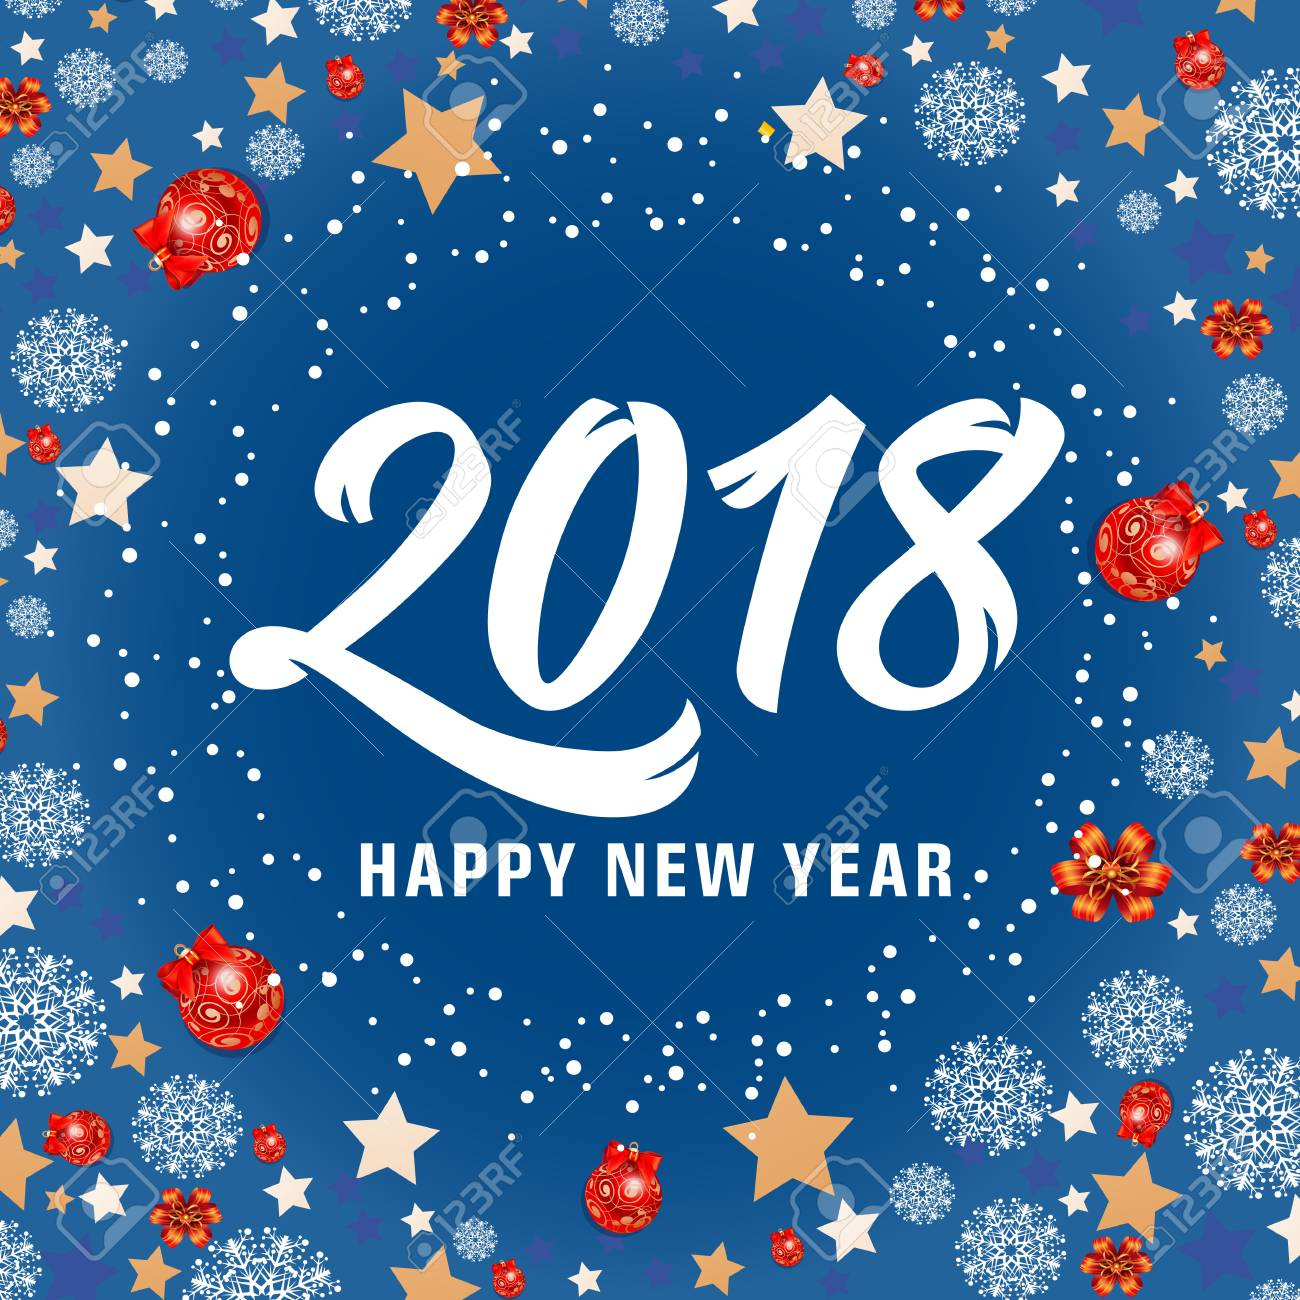 Happy new year 2018 lettering new year day greeting card with happy new year 2018 lettering new year day greeting card with stars balls and m4hsunfo